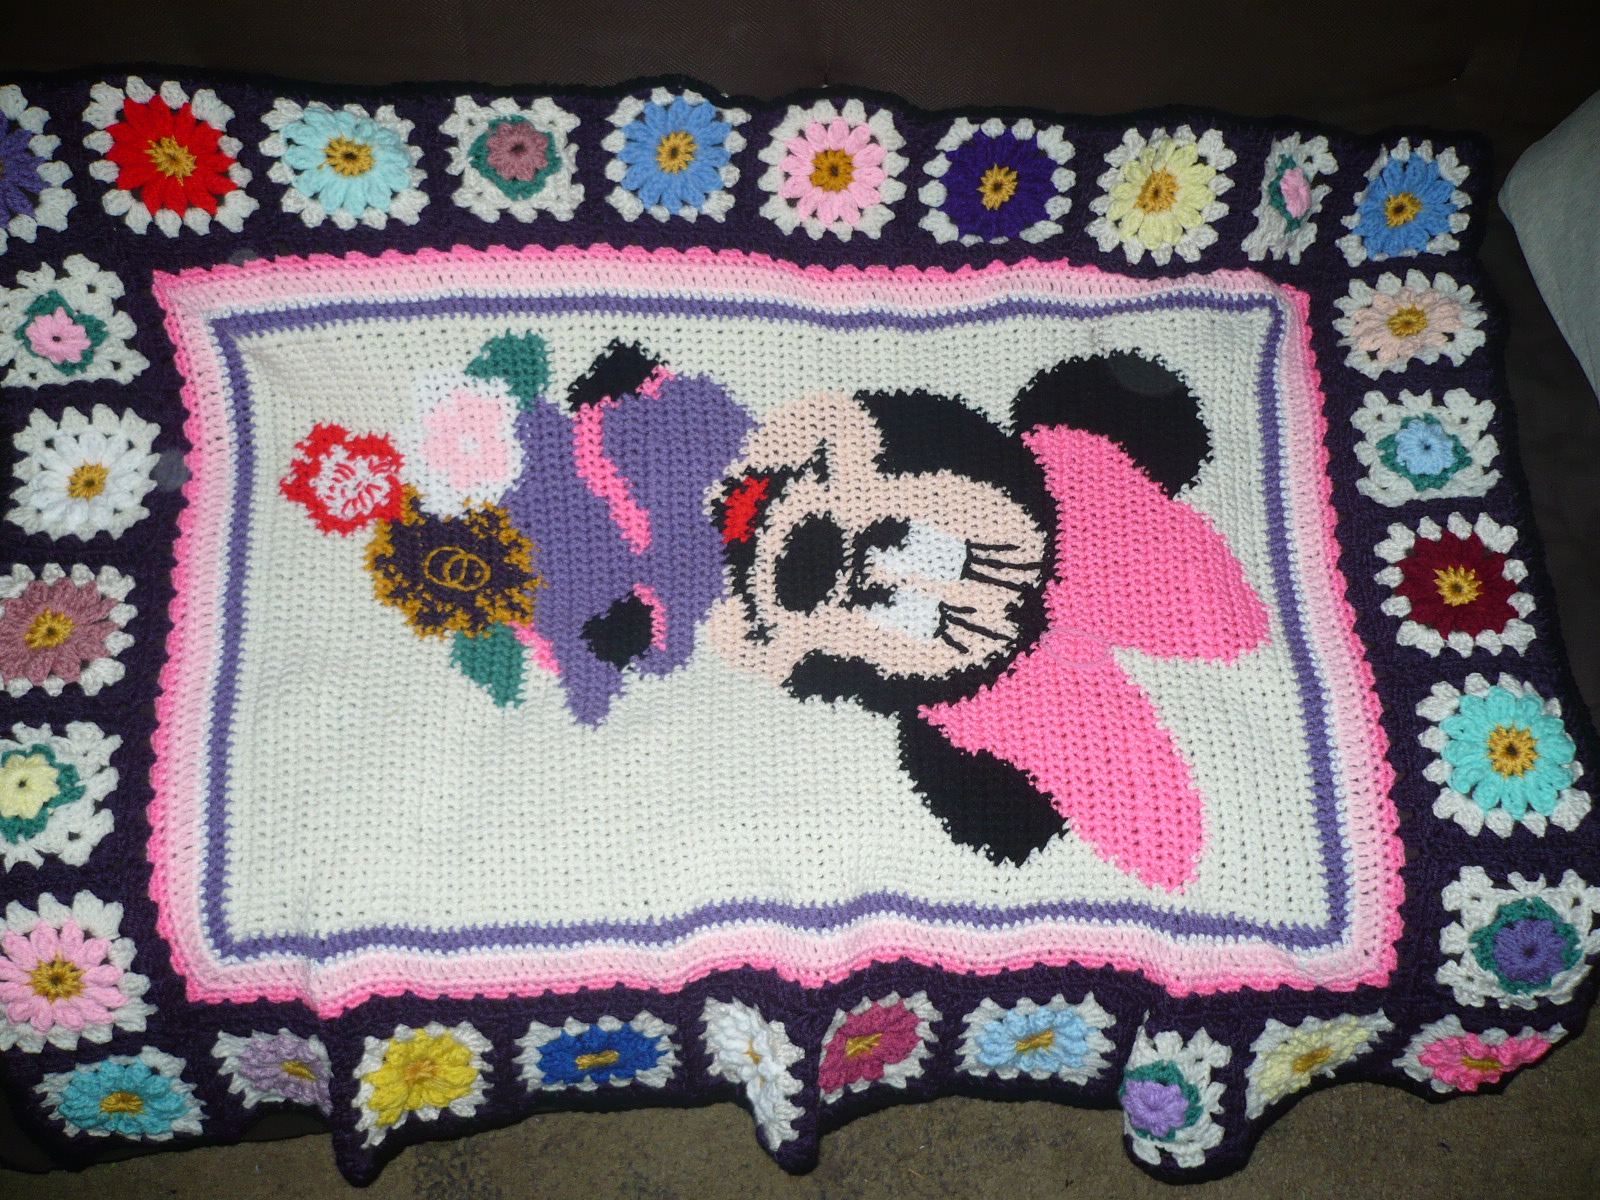 Stitches Crochet Minnie Mouse Blanket